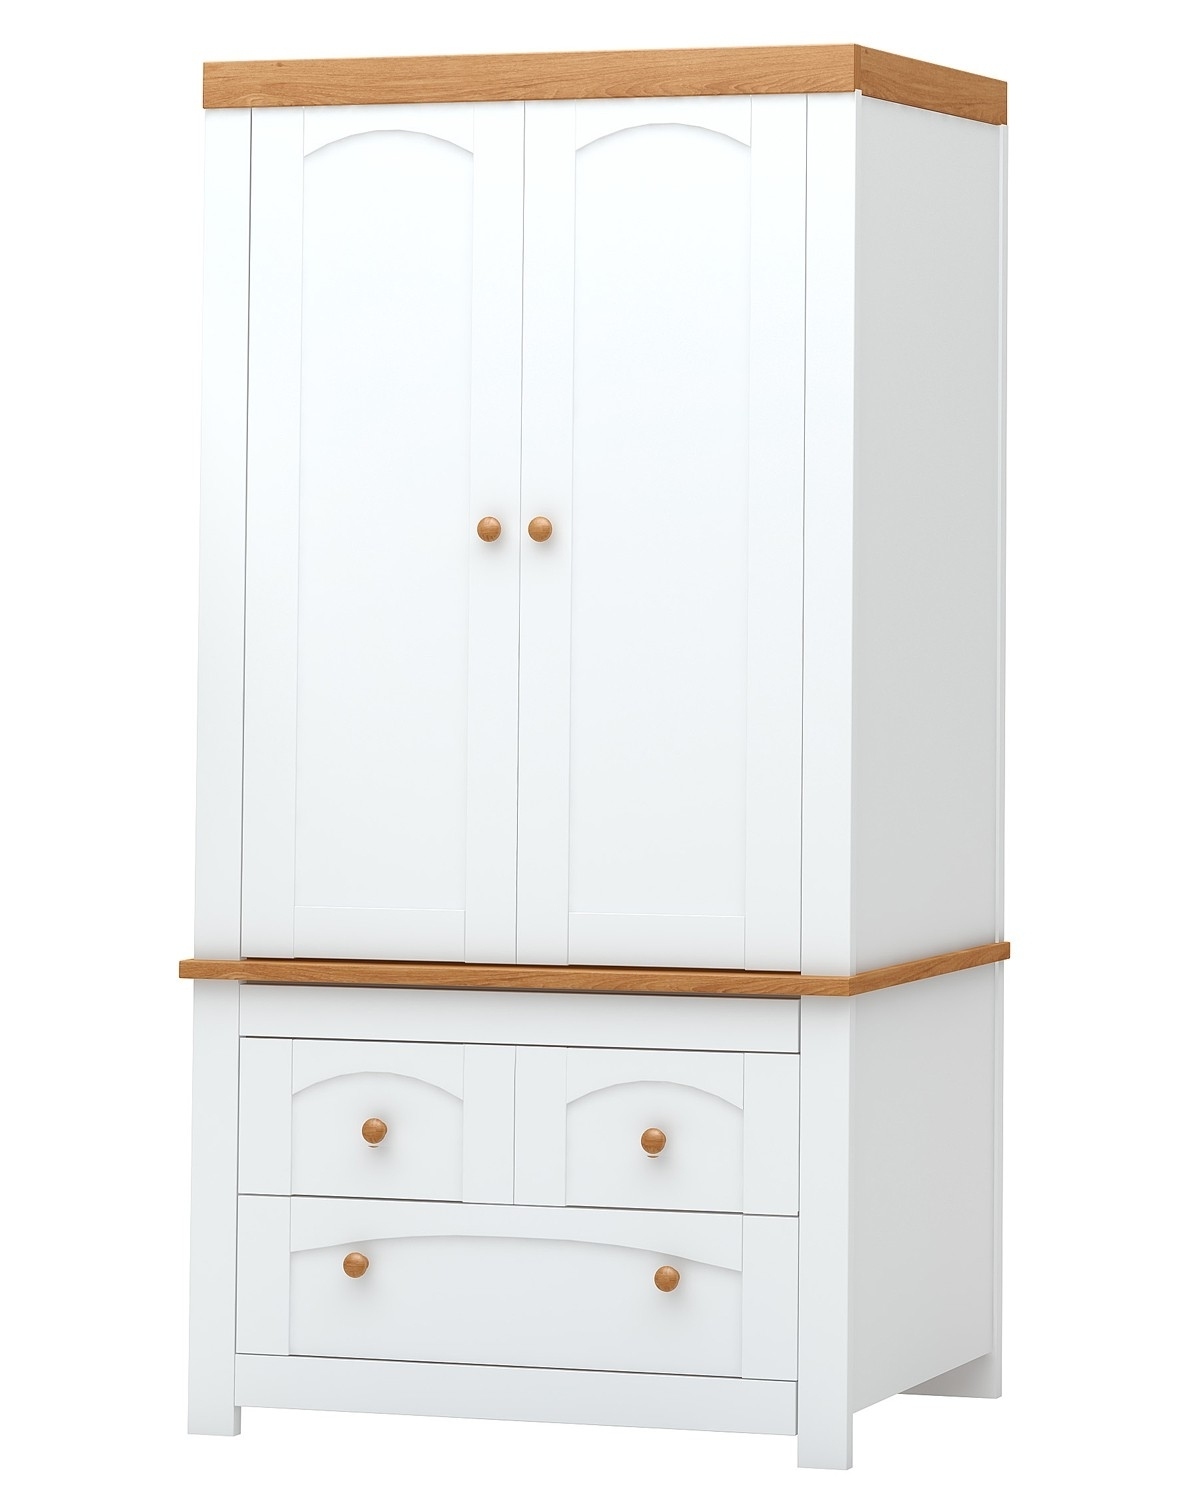 Trendy White Wood Wardrobe Doors Wooden Cupboard Cabinet Sideboard Throughout White Wood Wardrobes (View 9 of 15)